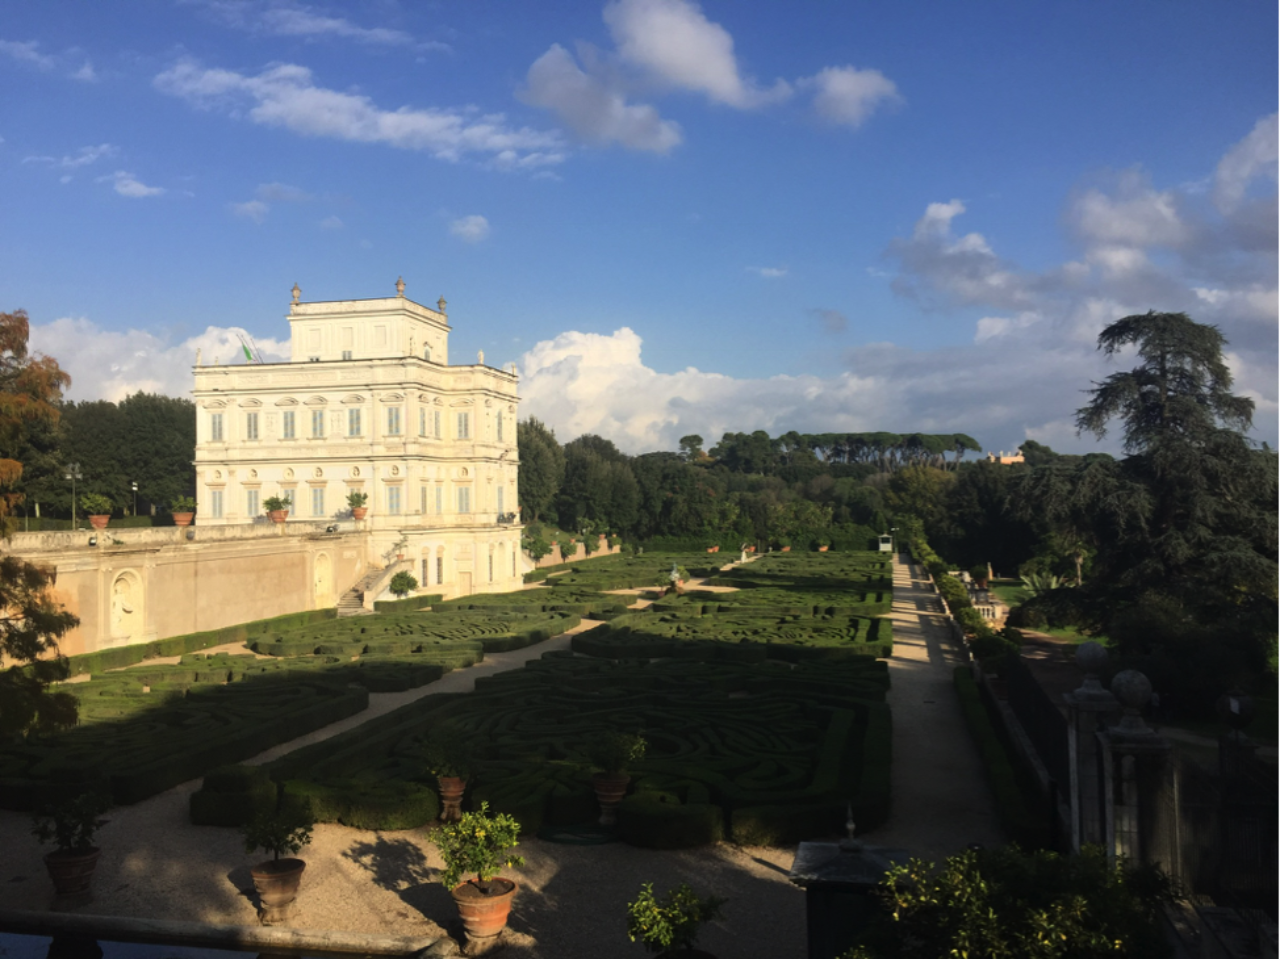 Villa Doria Pamphili and gardens